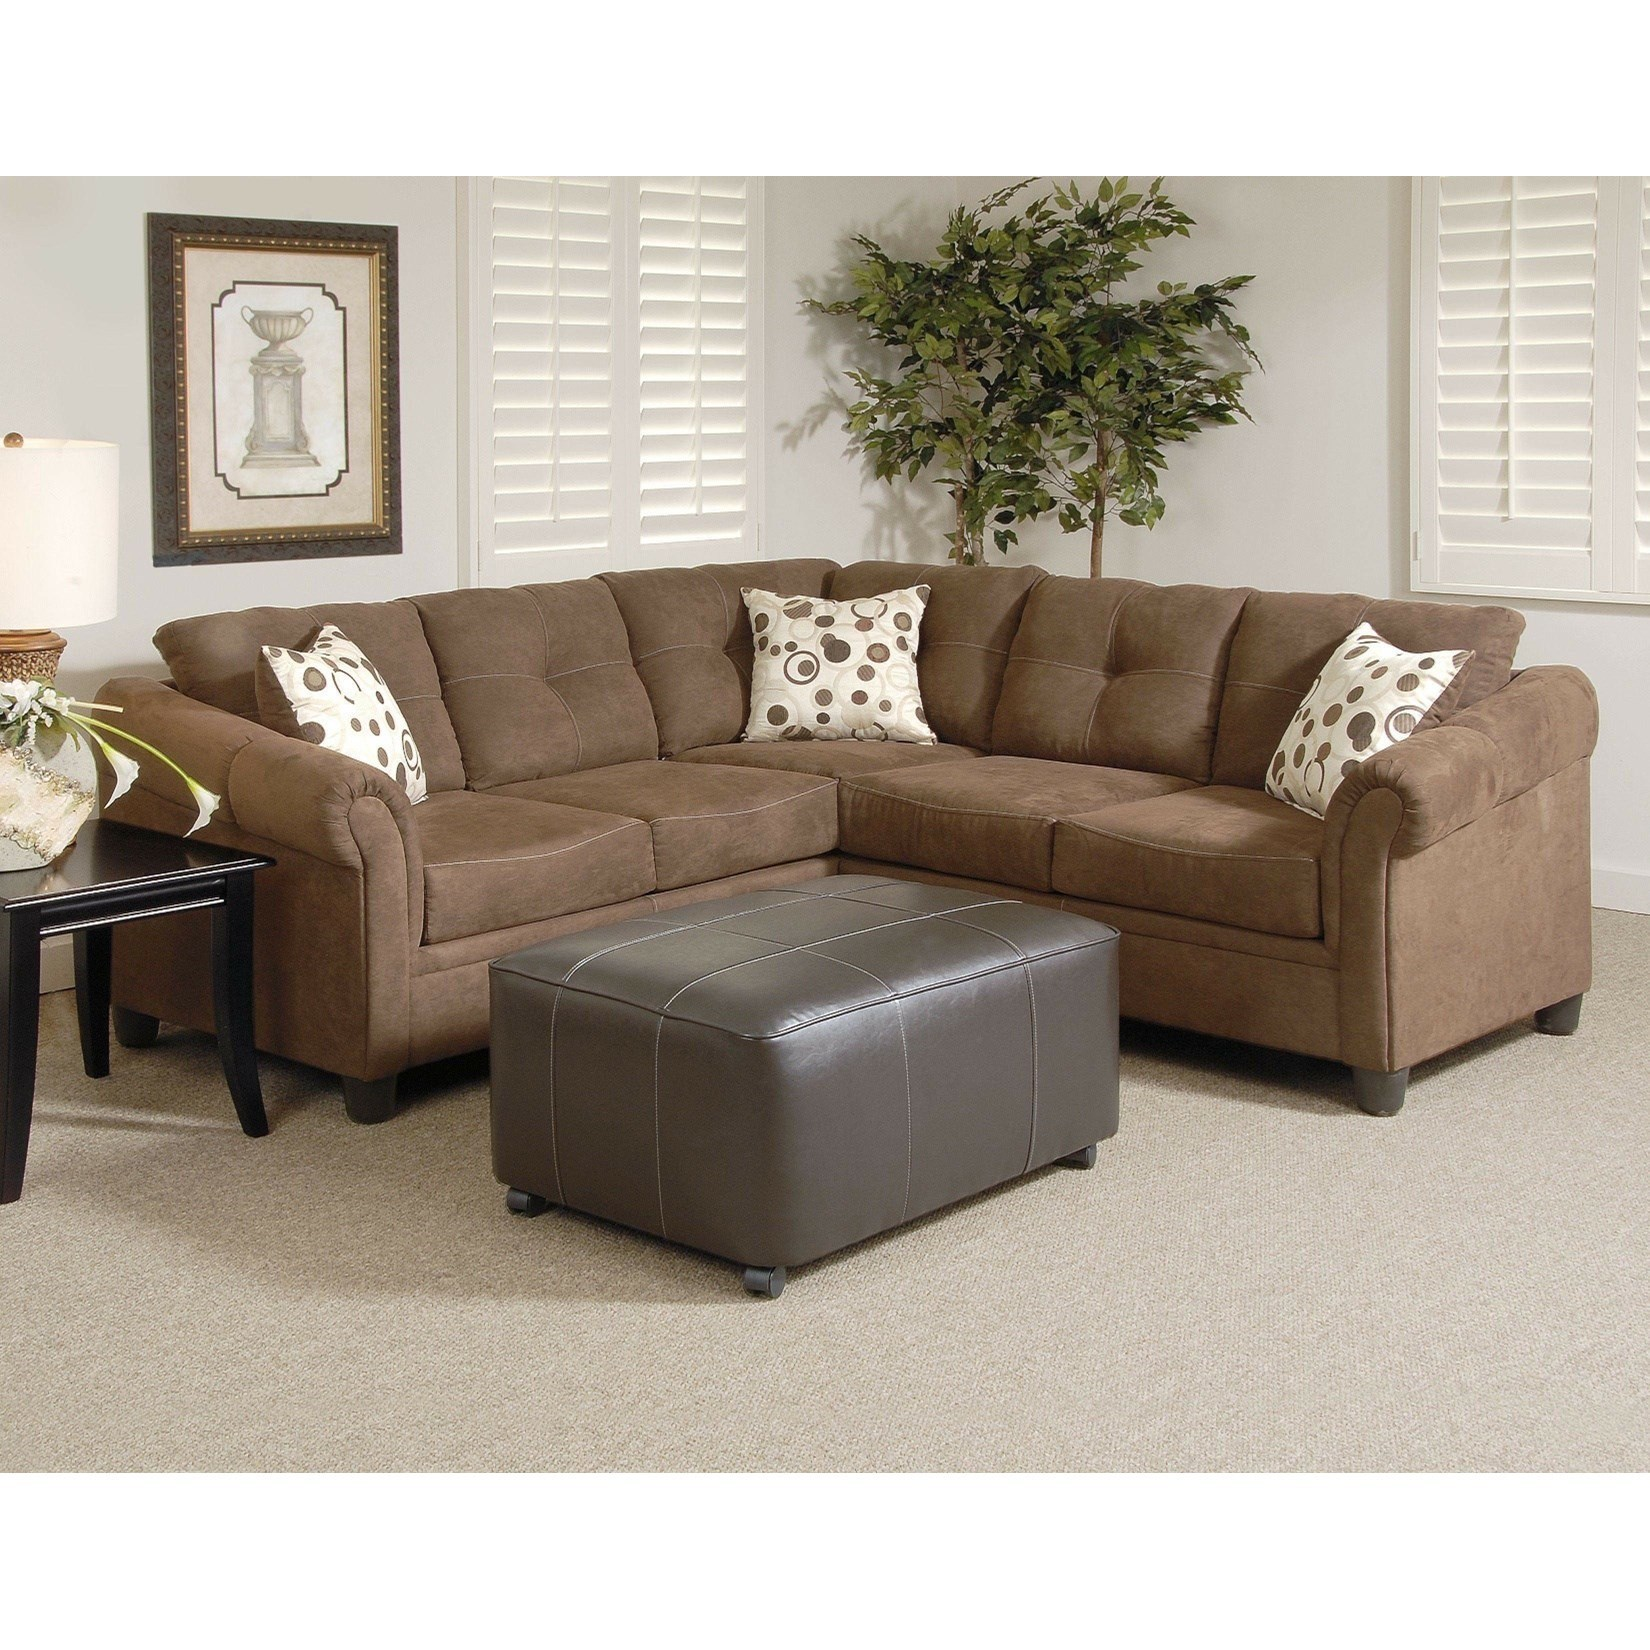 900 Casual Sectional Sofa With Tufted Pillow Backs By Serta Upholstery